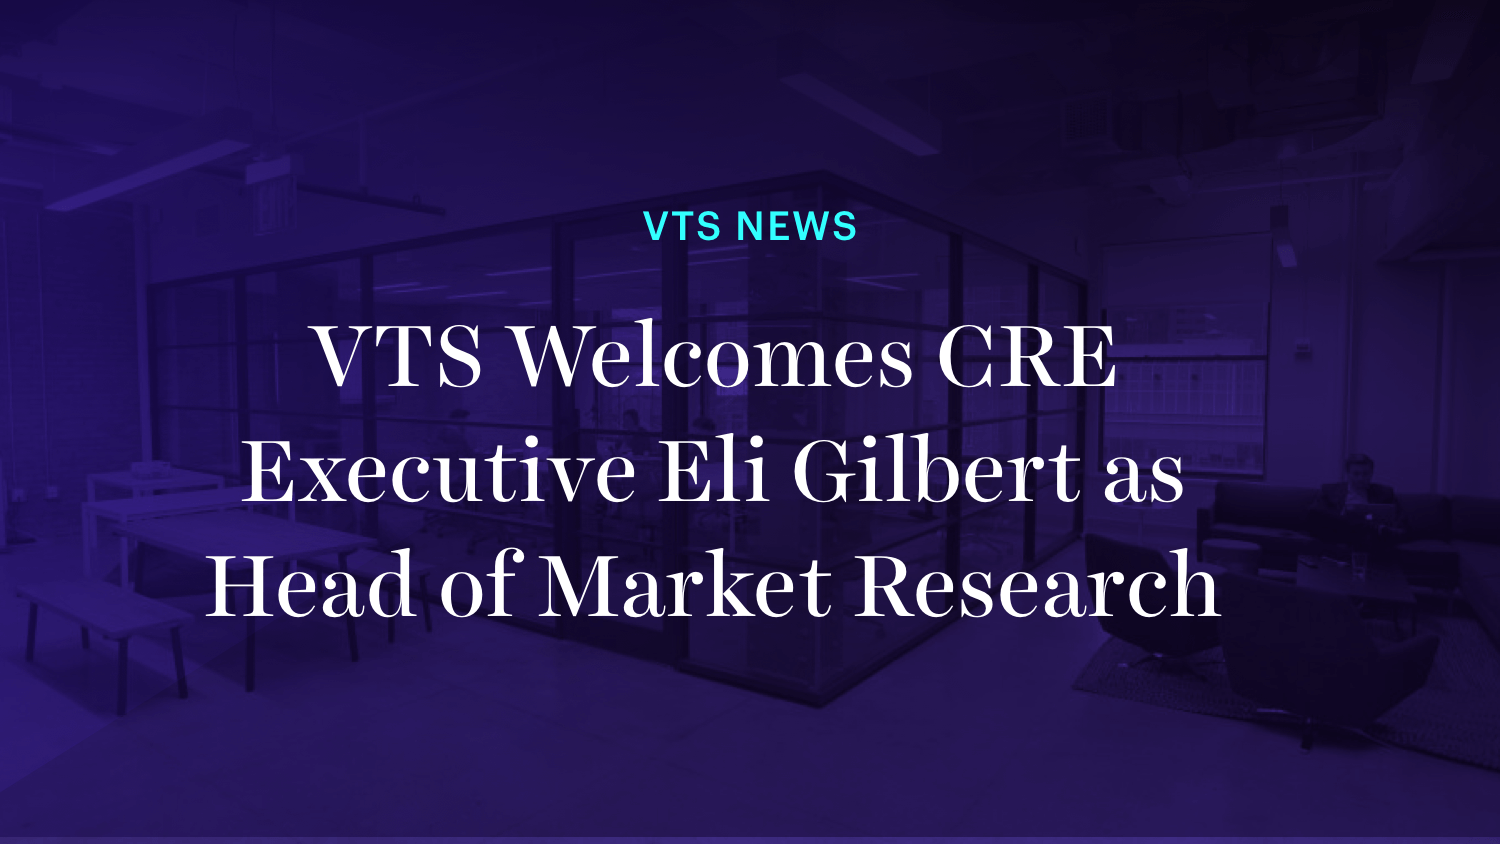 VTS Welcomes CRE Executive Eli Gilbert as Head of Market Research